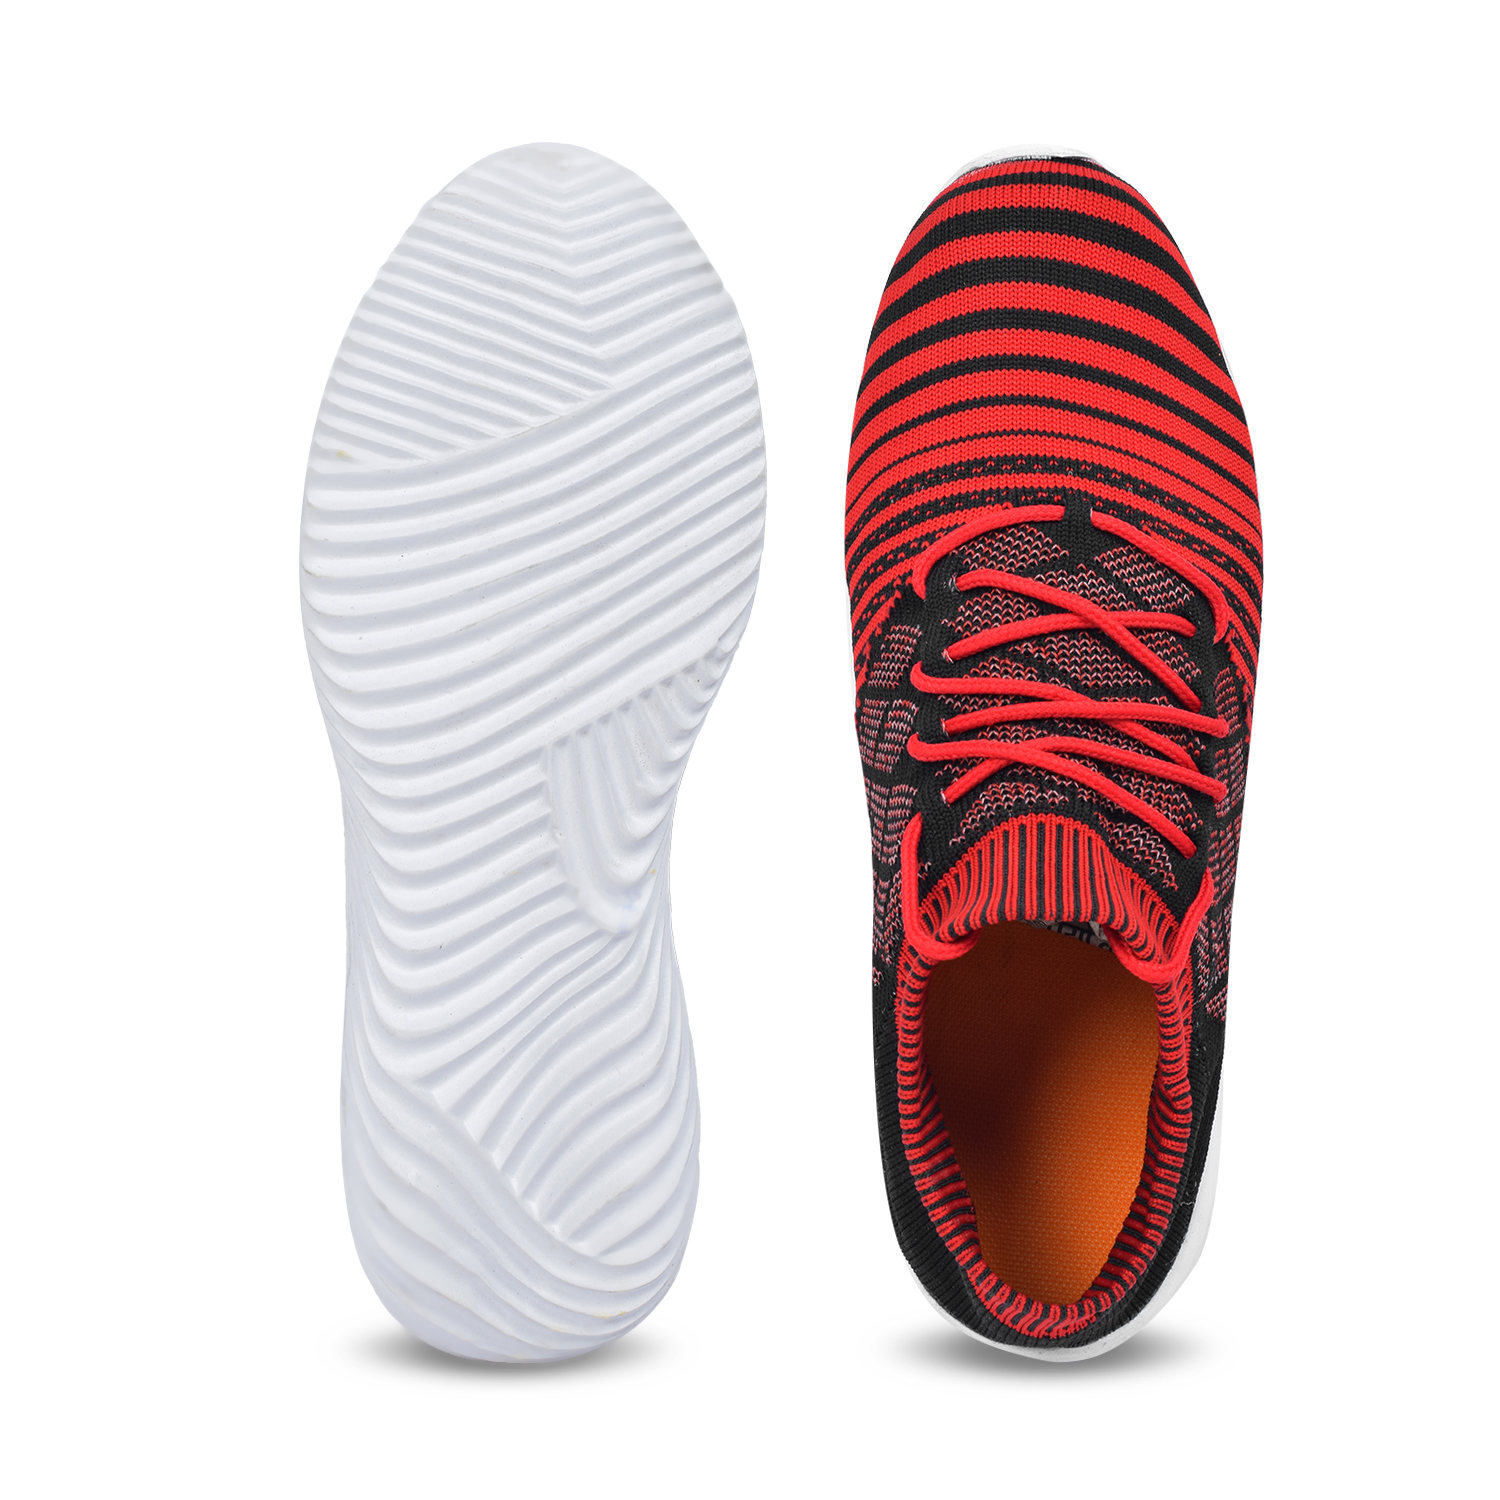 Tango Shoes Trendy Stylish Men's Sports Shoes 1002RED (RED, 6-10, 8 PAIR)